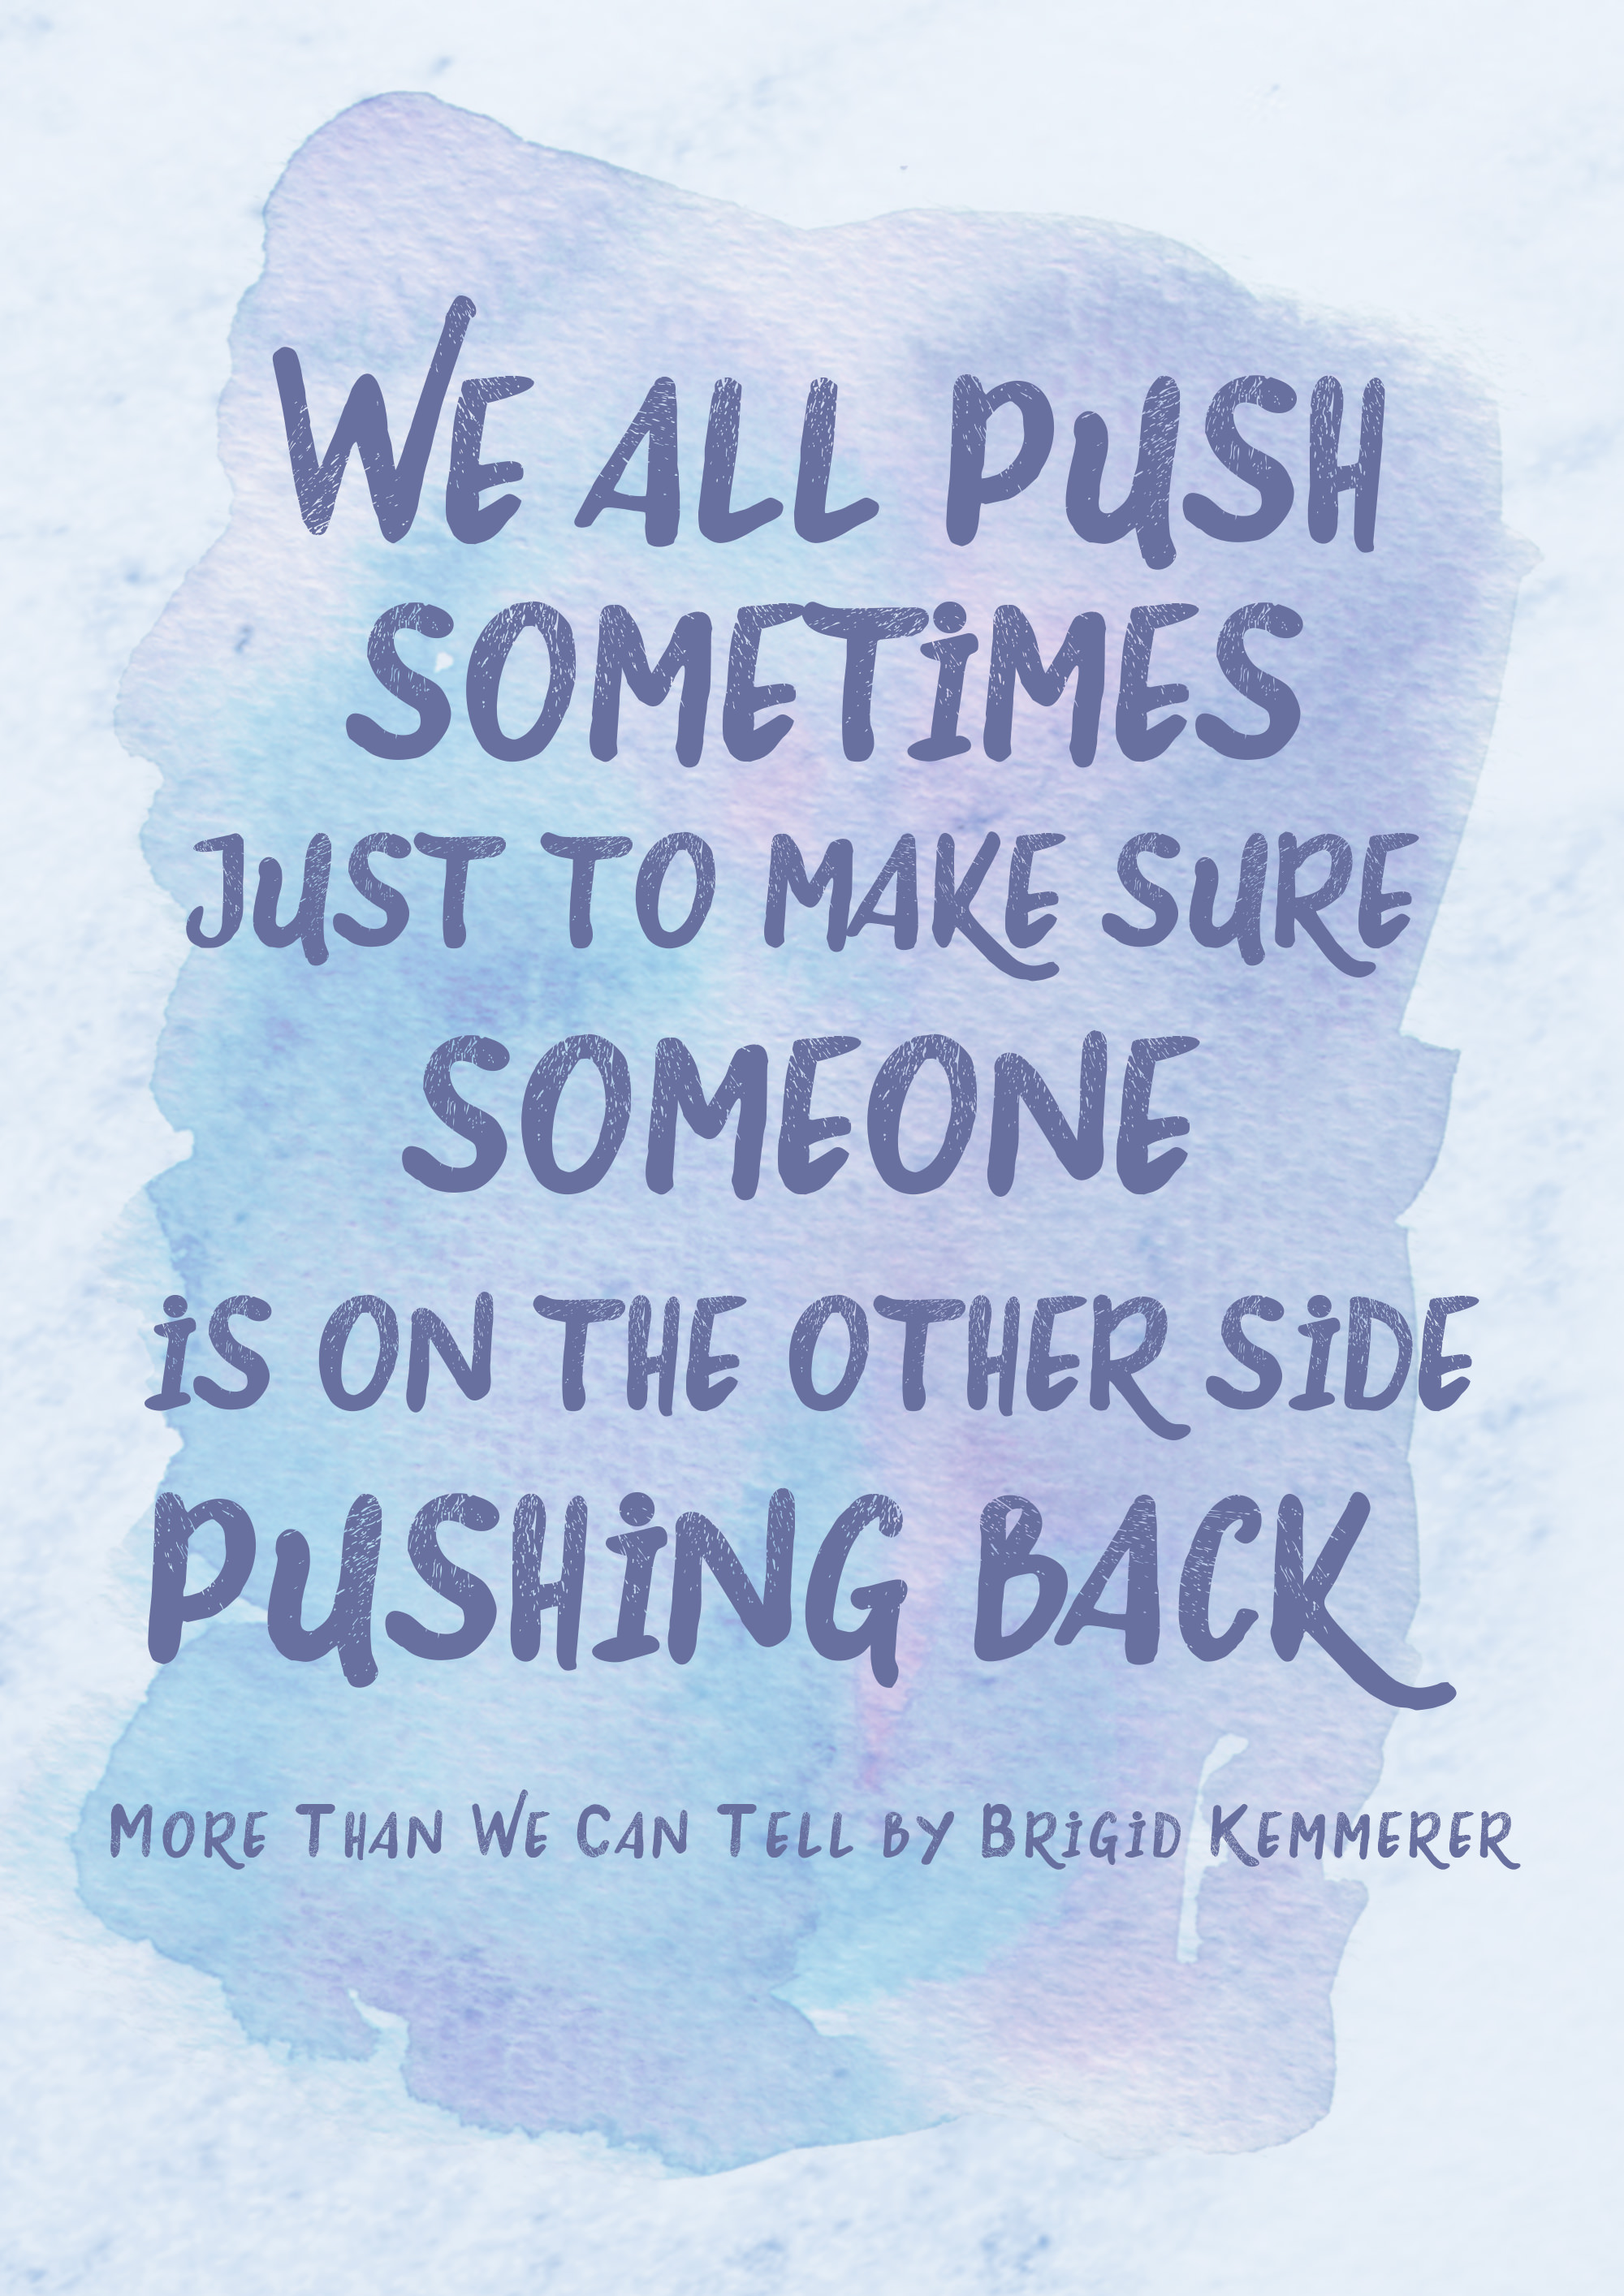 More Than We Can Tell by Brigid Kemmerer Quote Poster - We all push sometimes just to make sure someone is on the other side pushing back